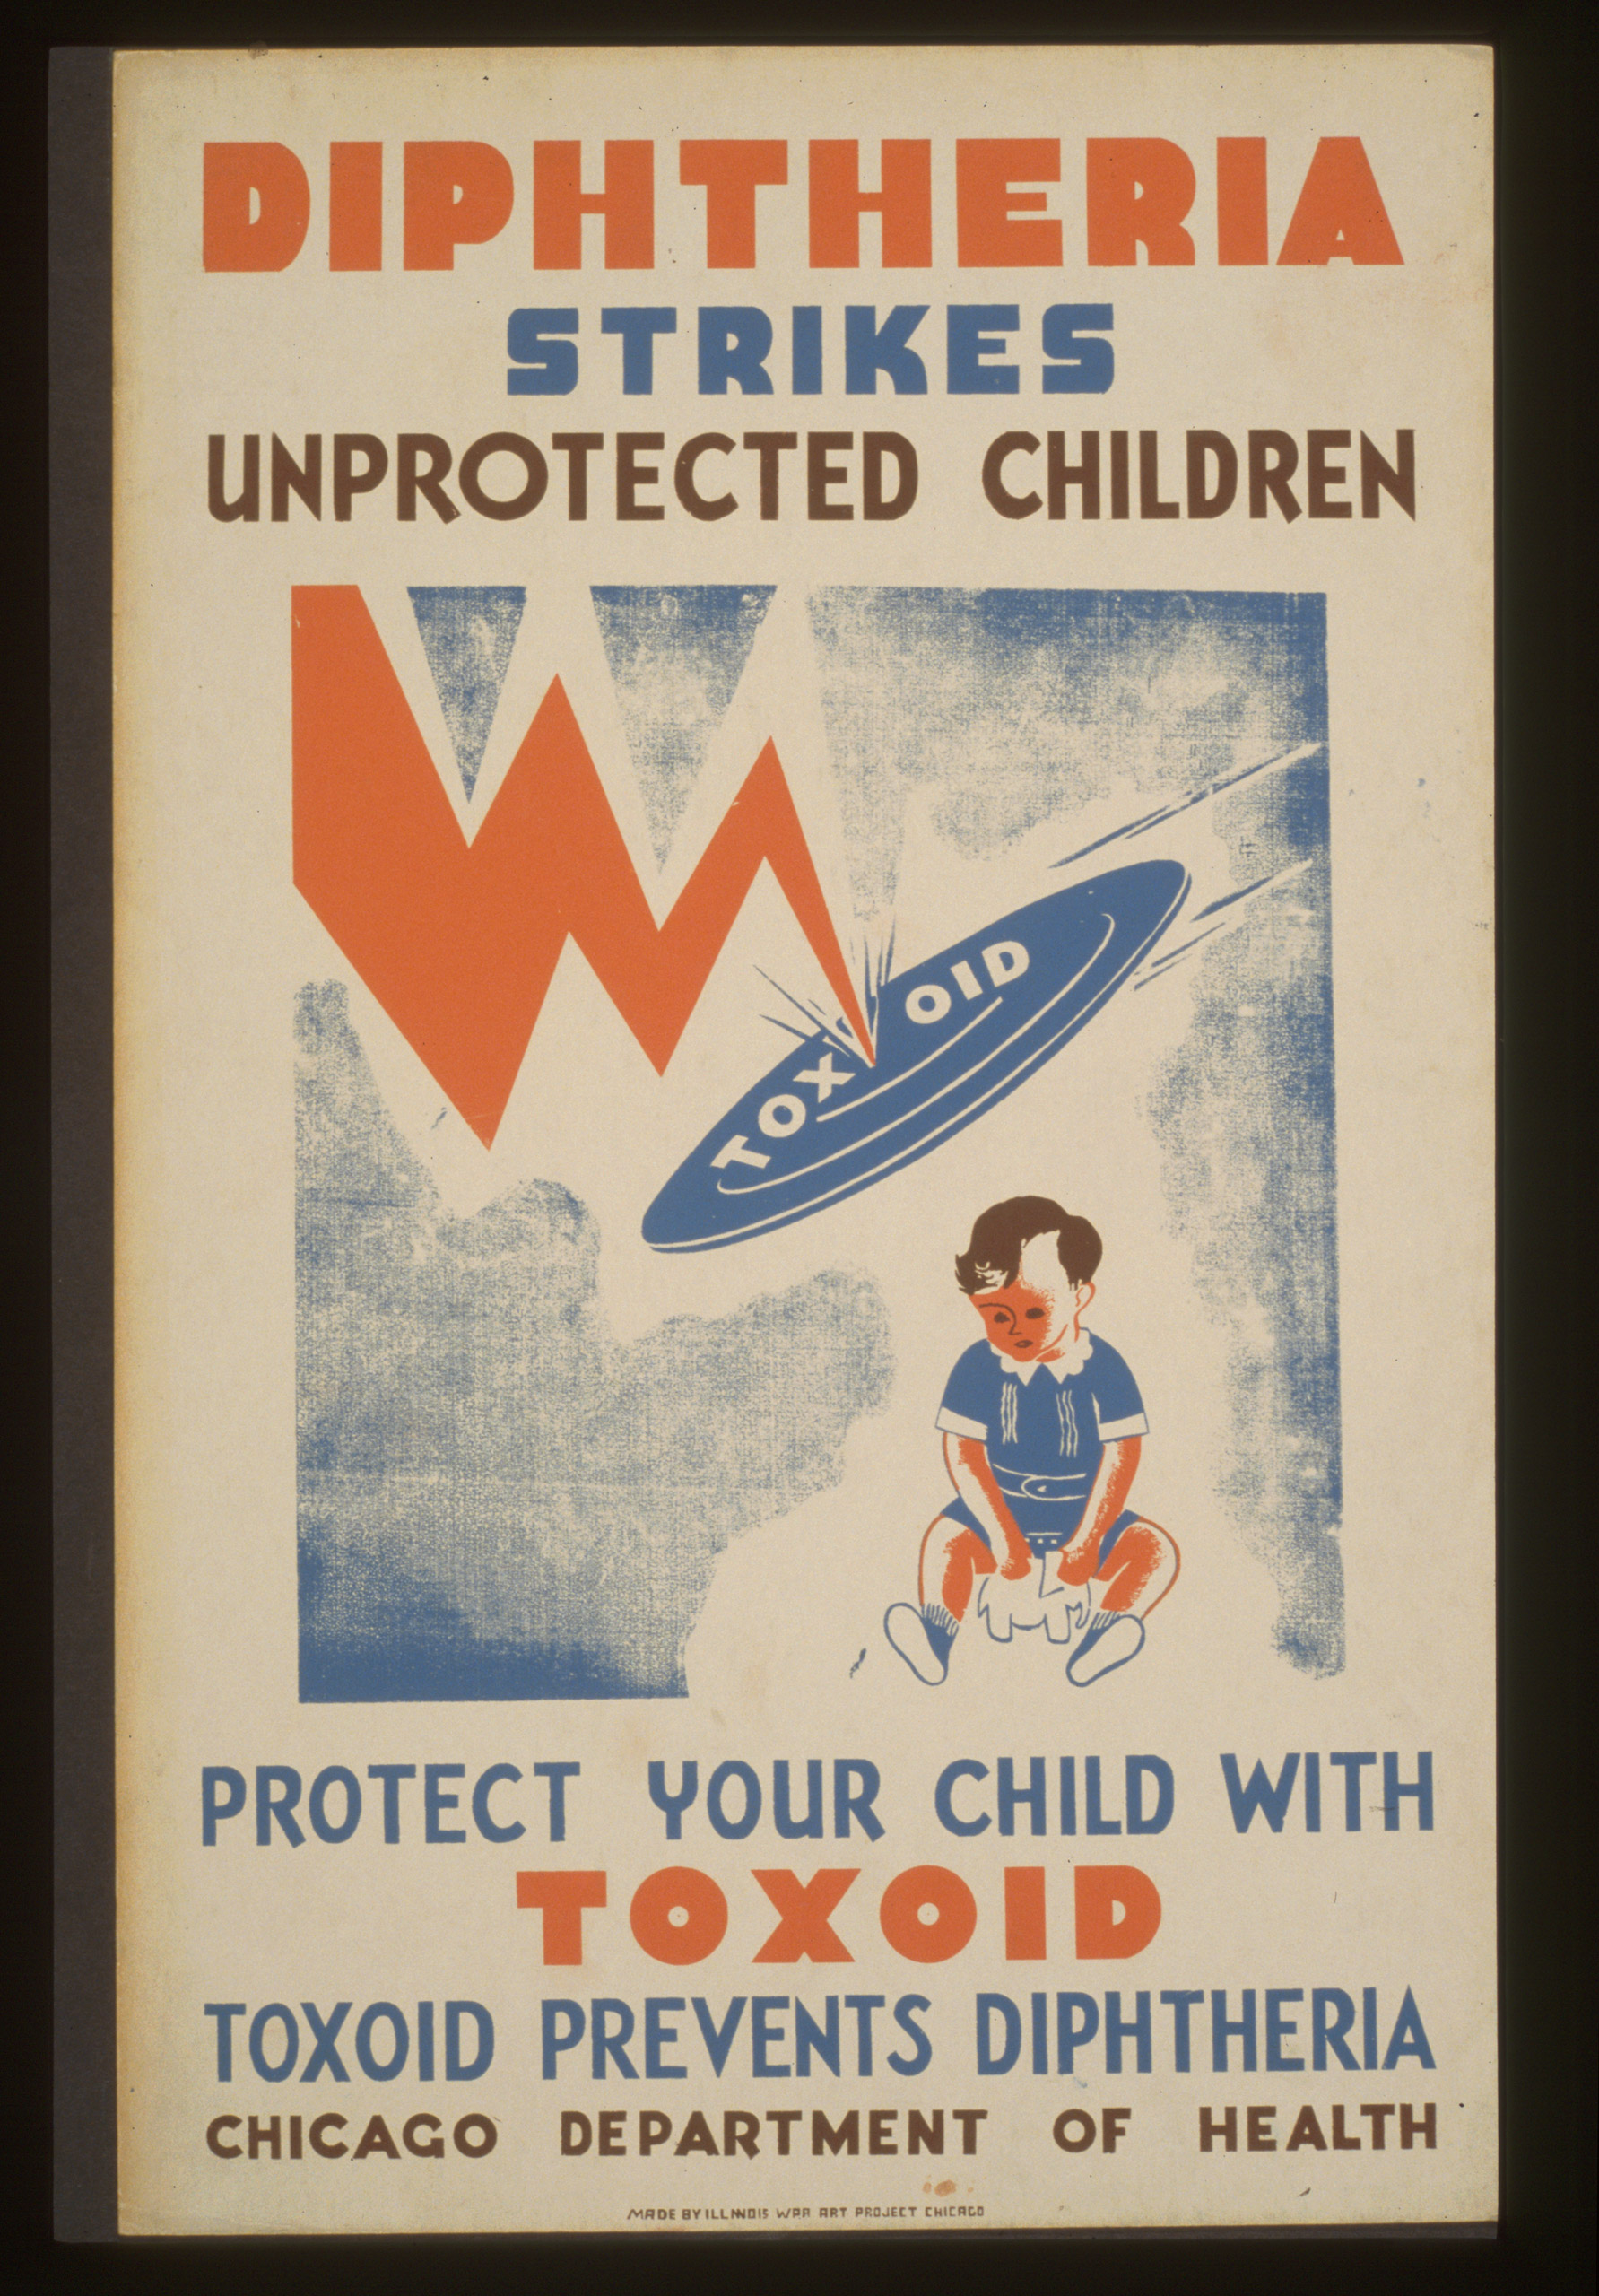 Poster for the Chicago Department of Health, showing a flying disc  Toxoid  preventing a lightning bolt from striking a child. Created between 1936 and 1941.